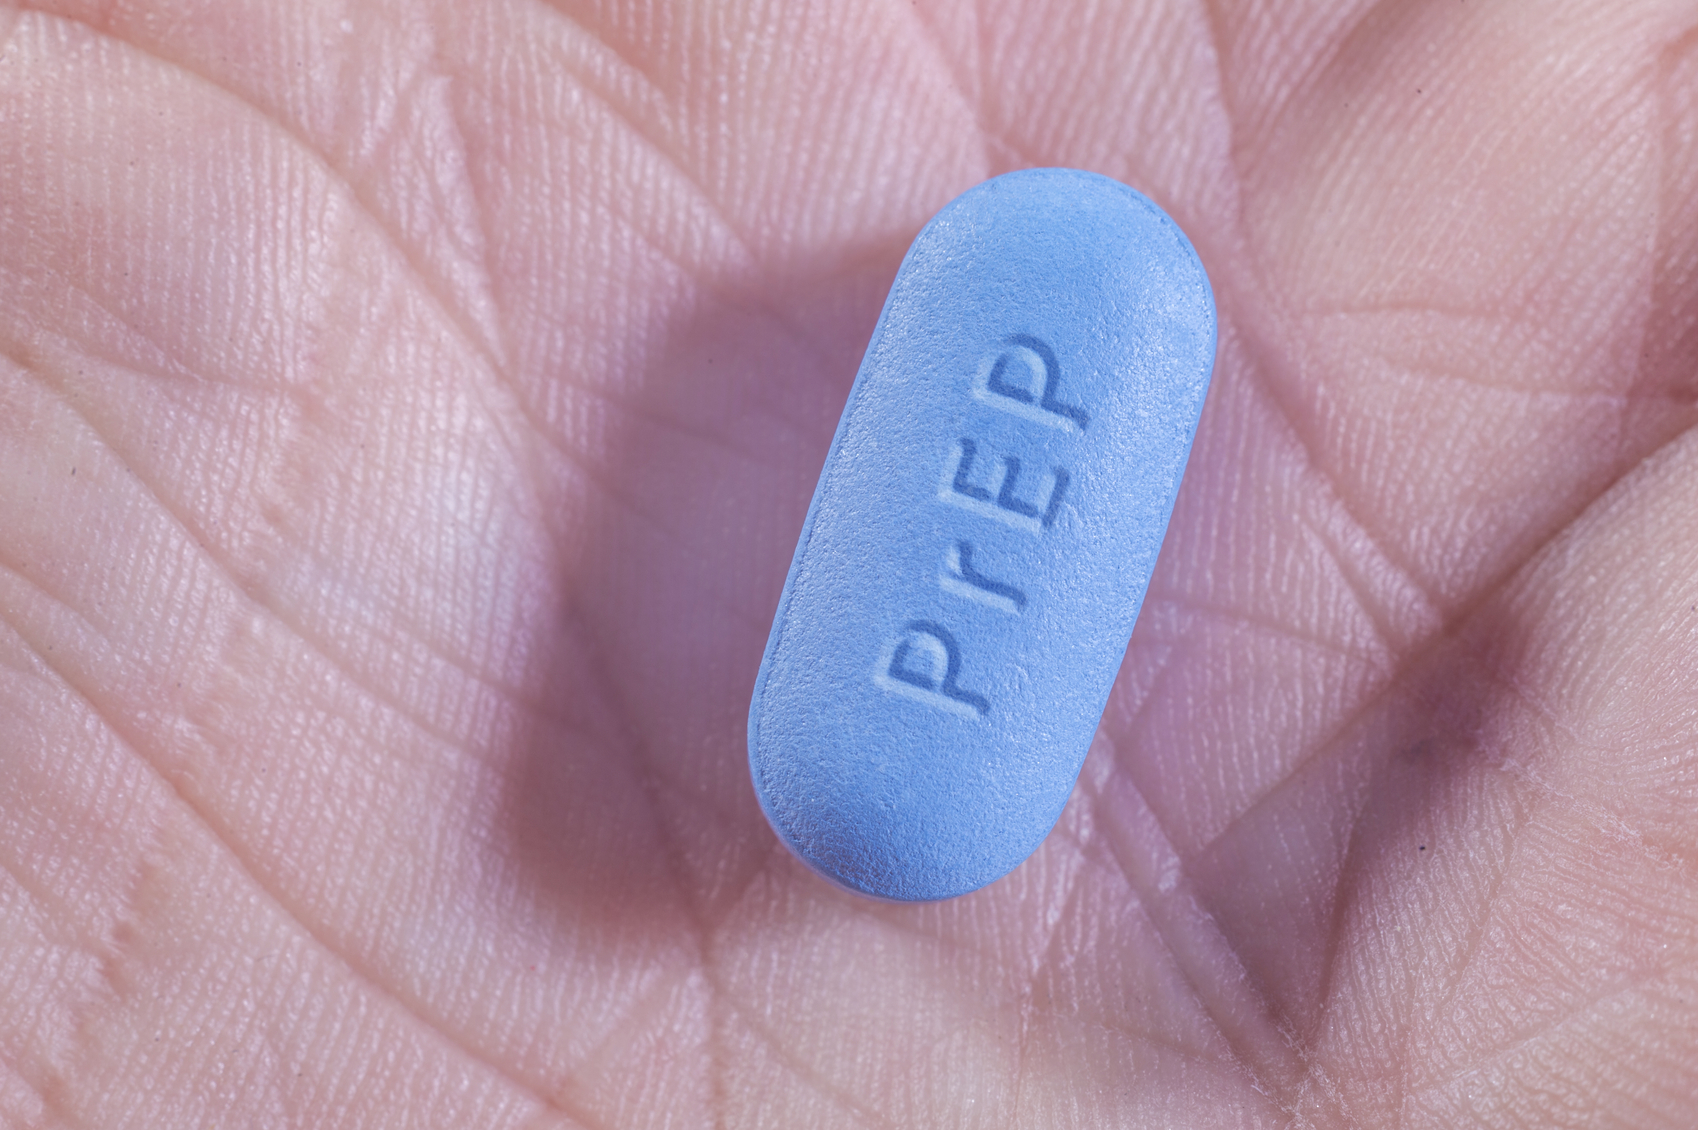 Concern raised over a possible link between PrEP use and increased risk of STI acquisition - poză 1